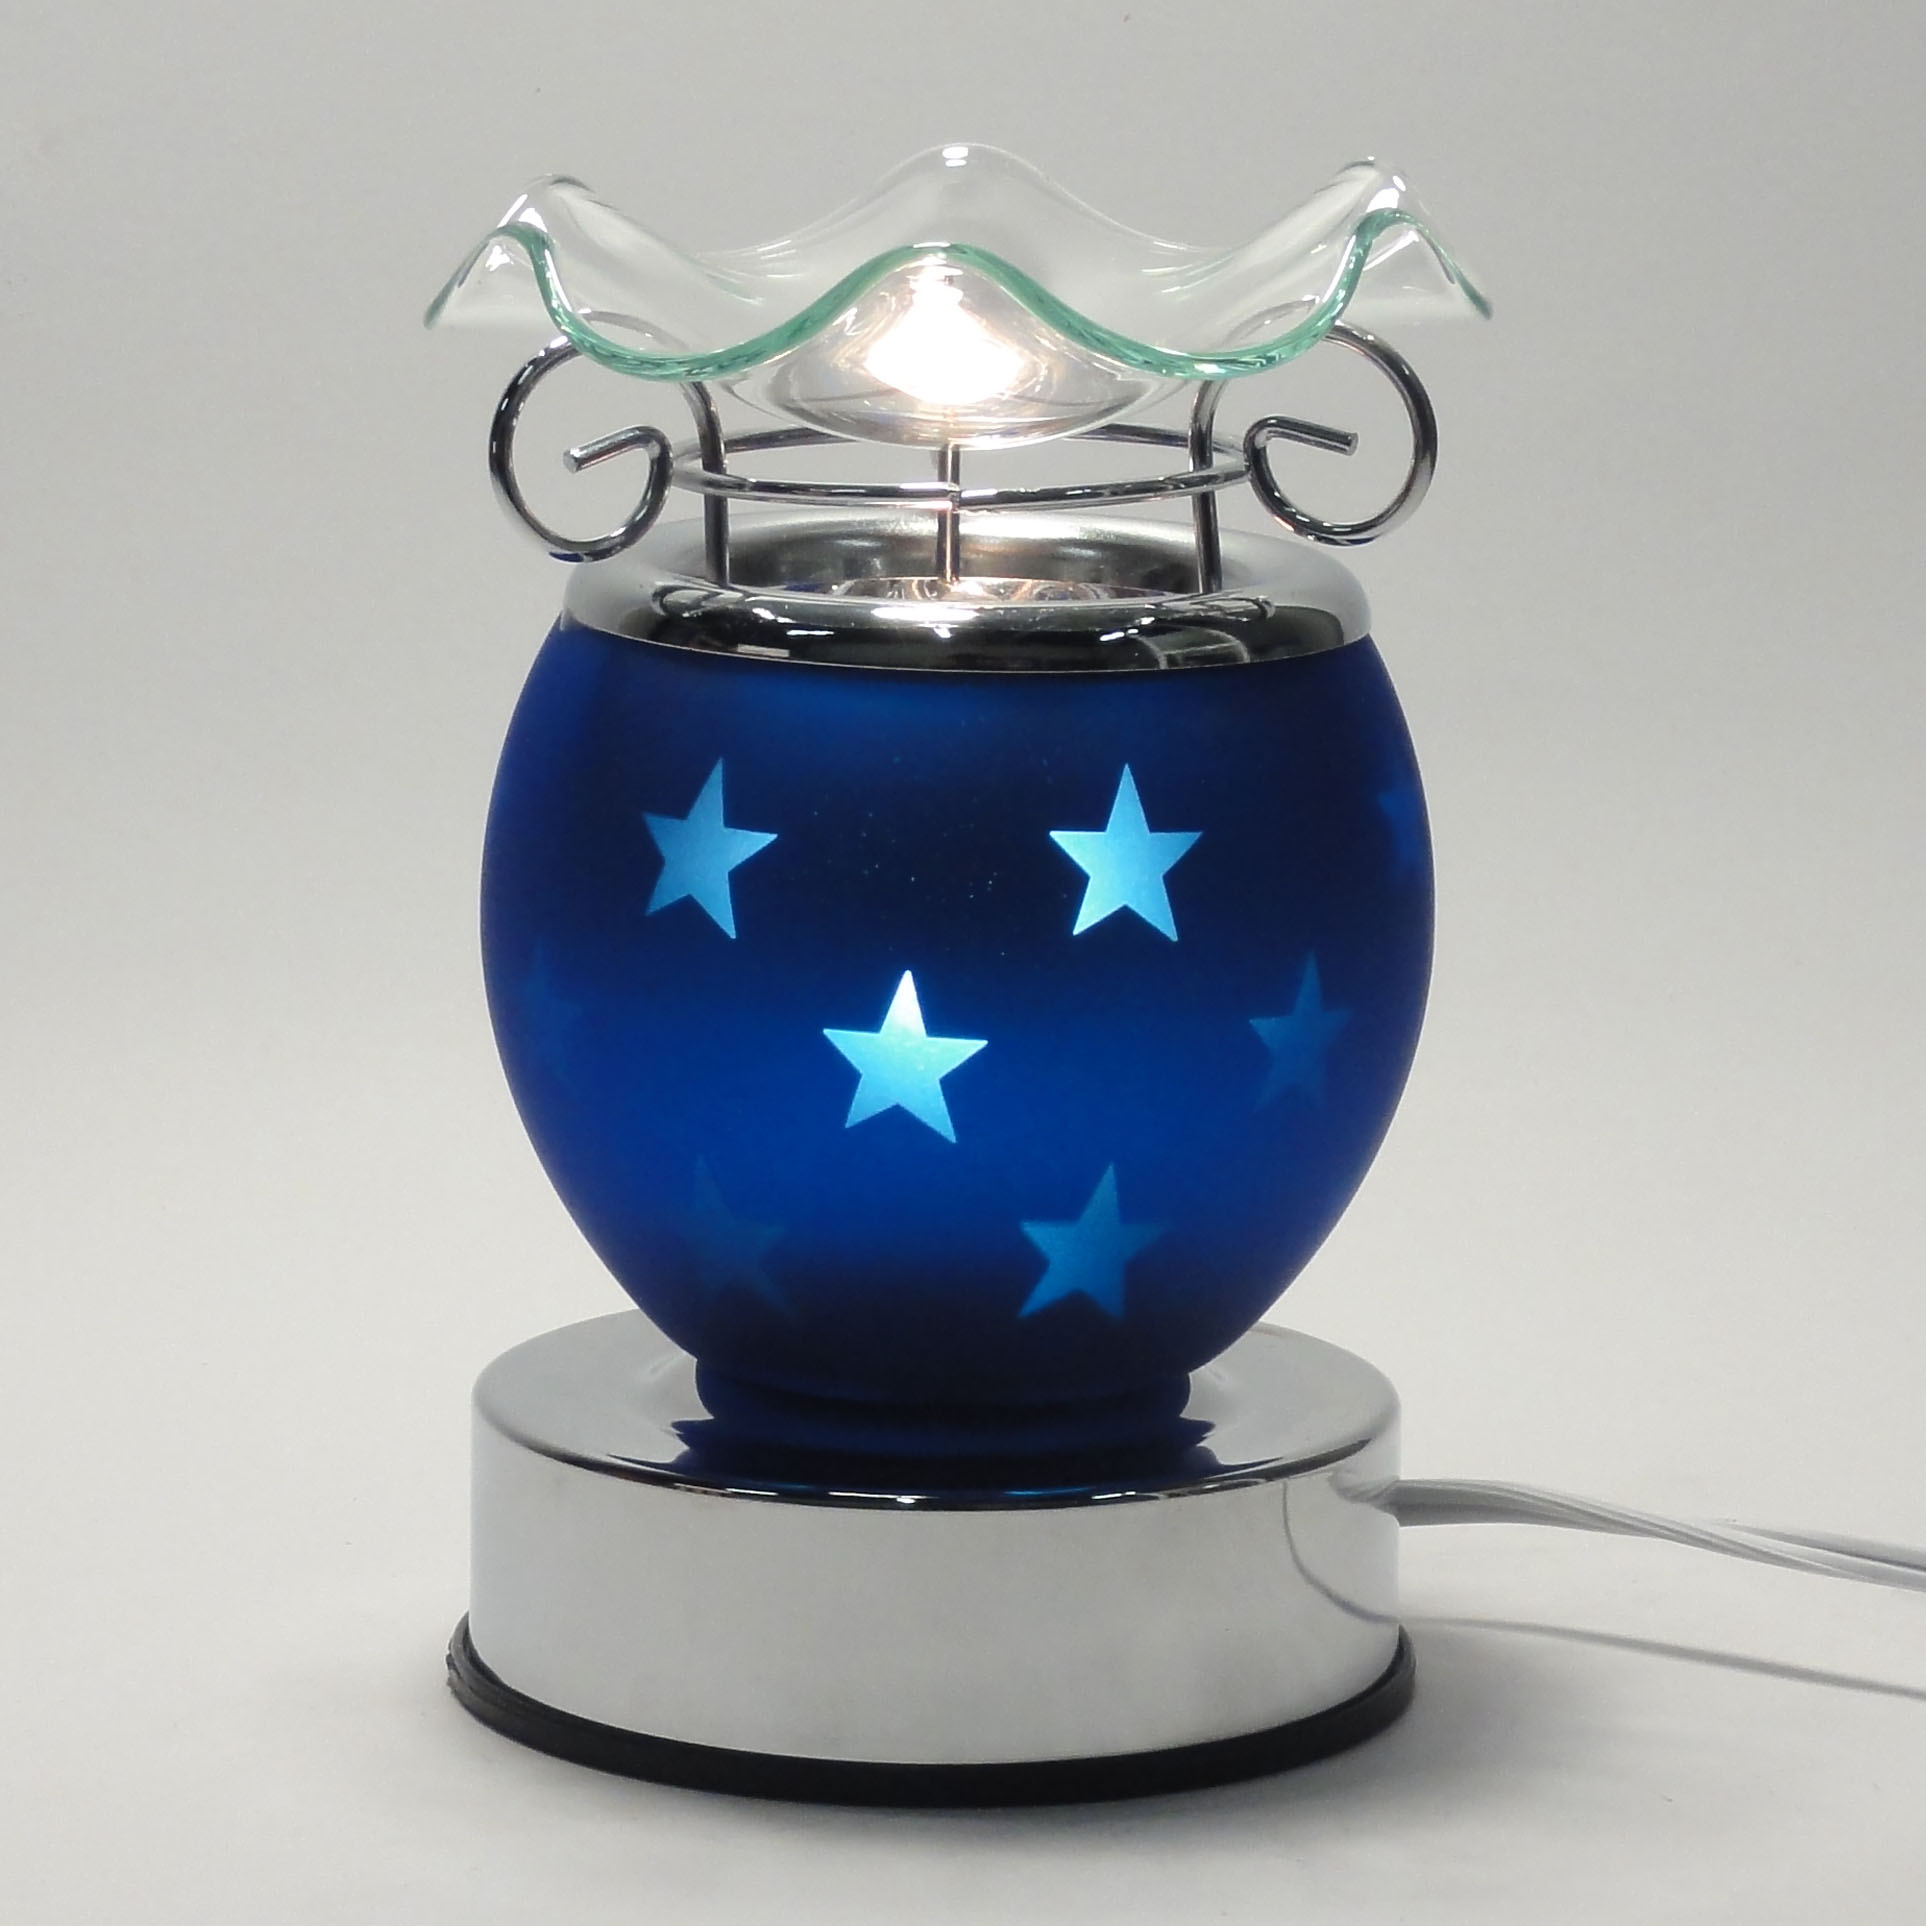 Scent Shop Night Lights: Electric Touch Lamp Fragrance Oil And Tart Wax Warmer